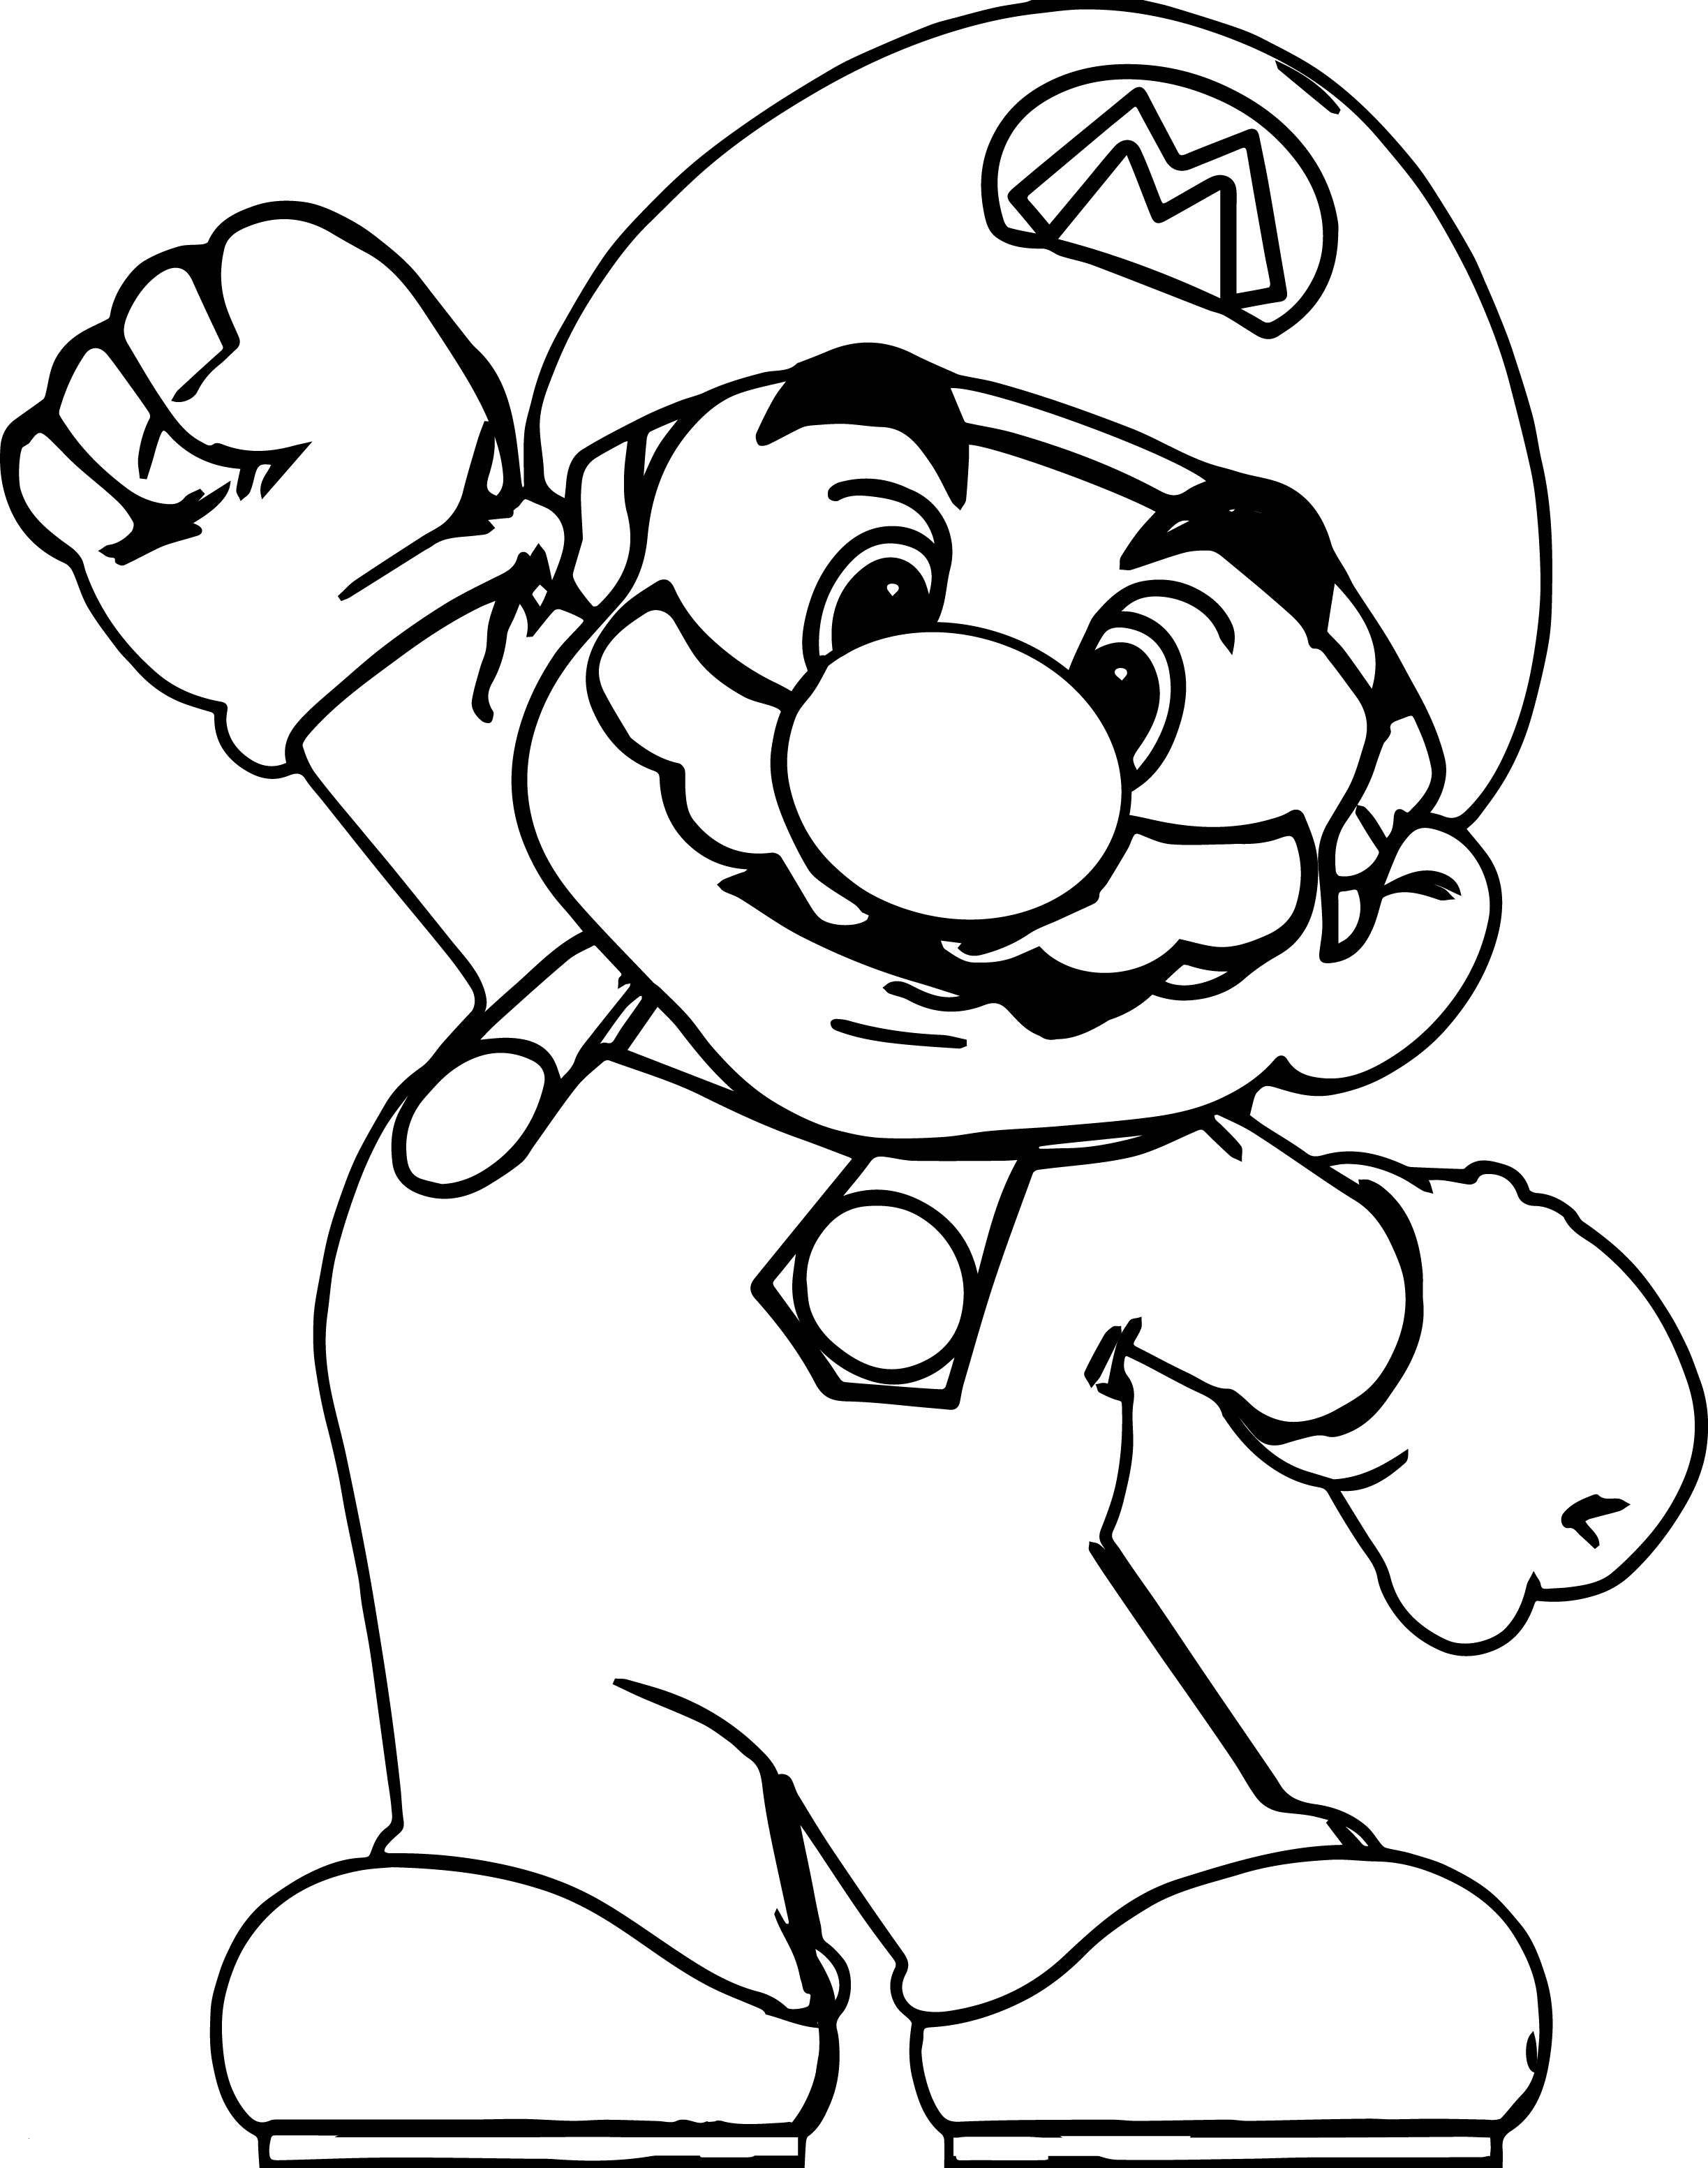 super mario pictures mario coloring pages free download on clipartmag super pictures mario